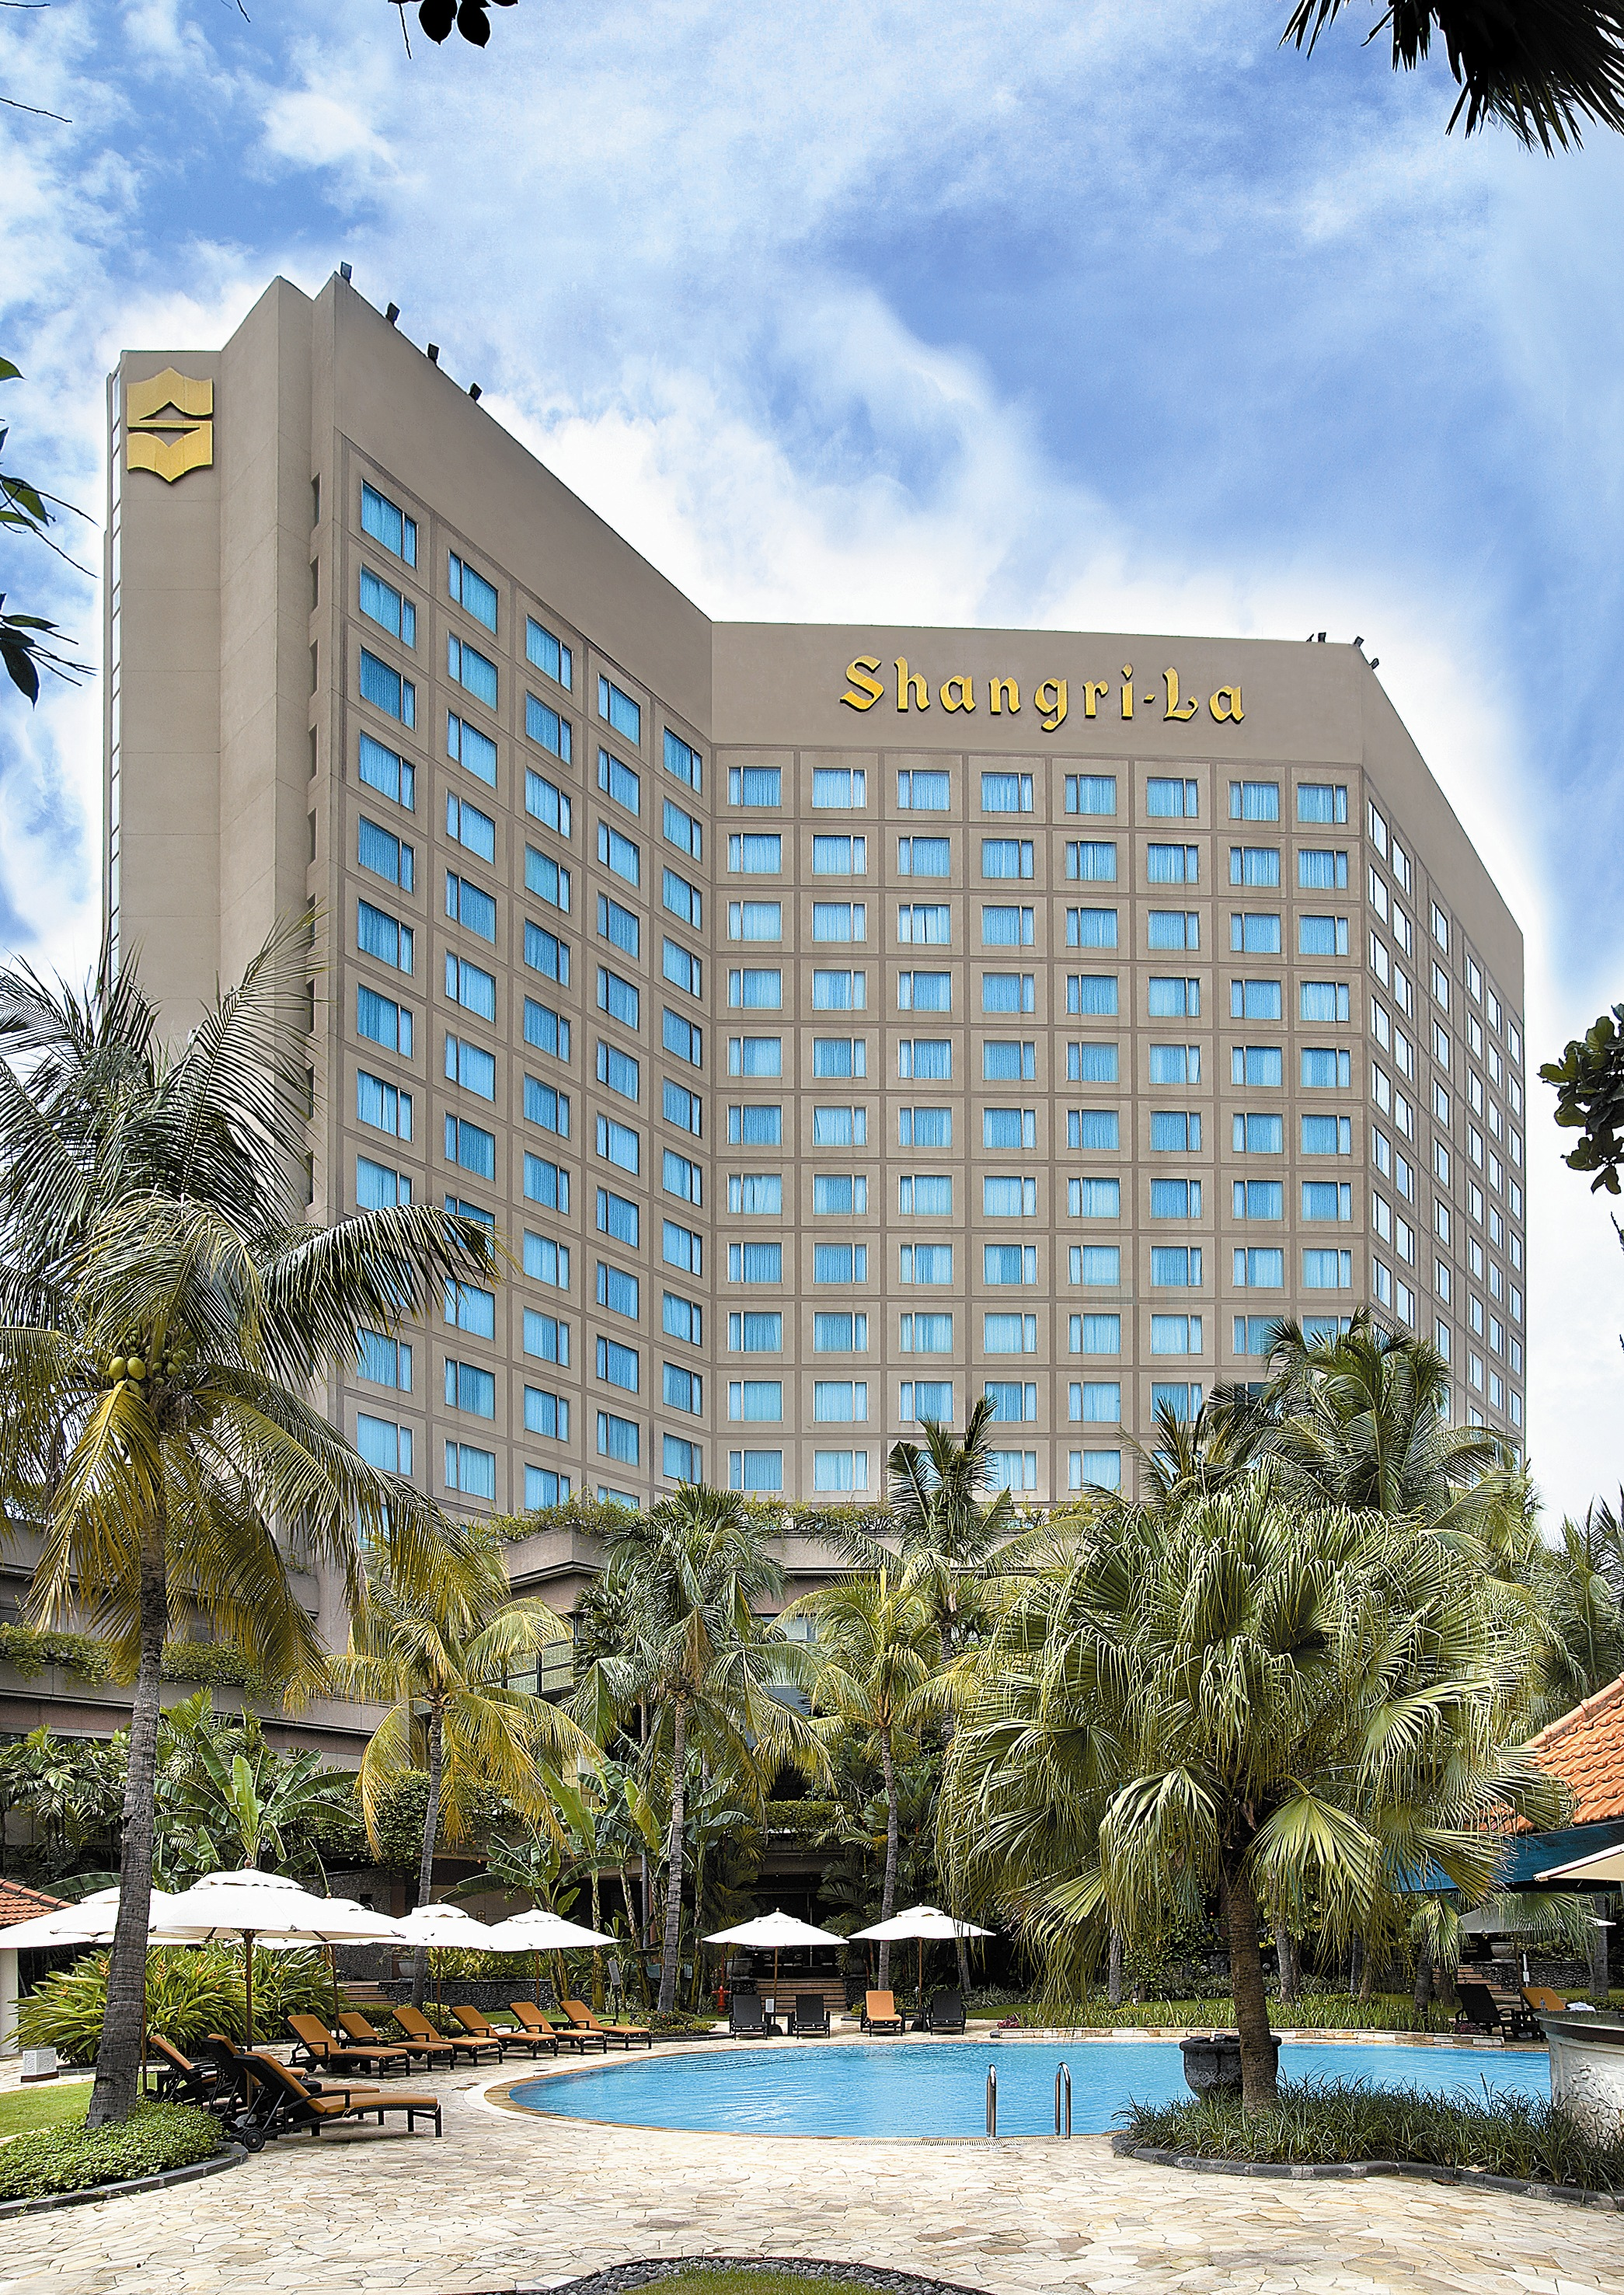 shangri la hotel and resort Hong kong-based shangri-la hotels and resorts, one of the world's premier hotel companies, currently owns and/or manages more than 80 hotels under the shangri-la brand with a room inventory of over 34,000.